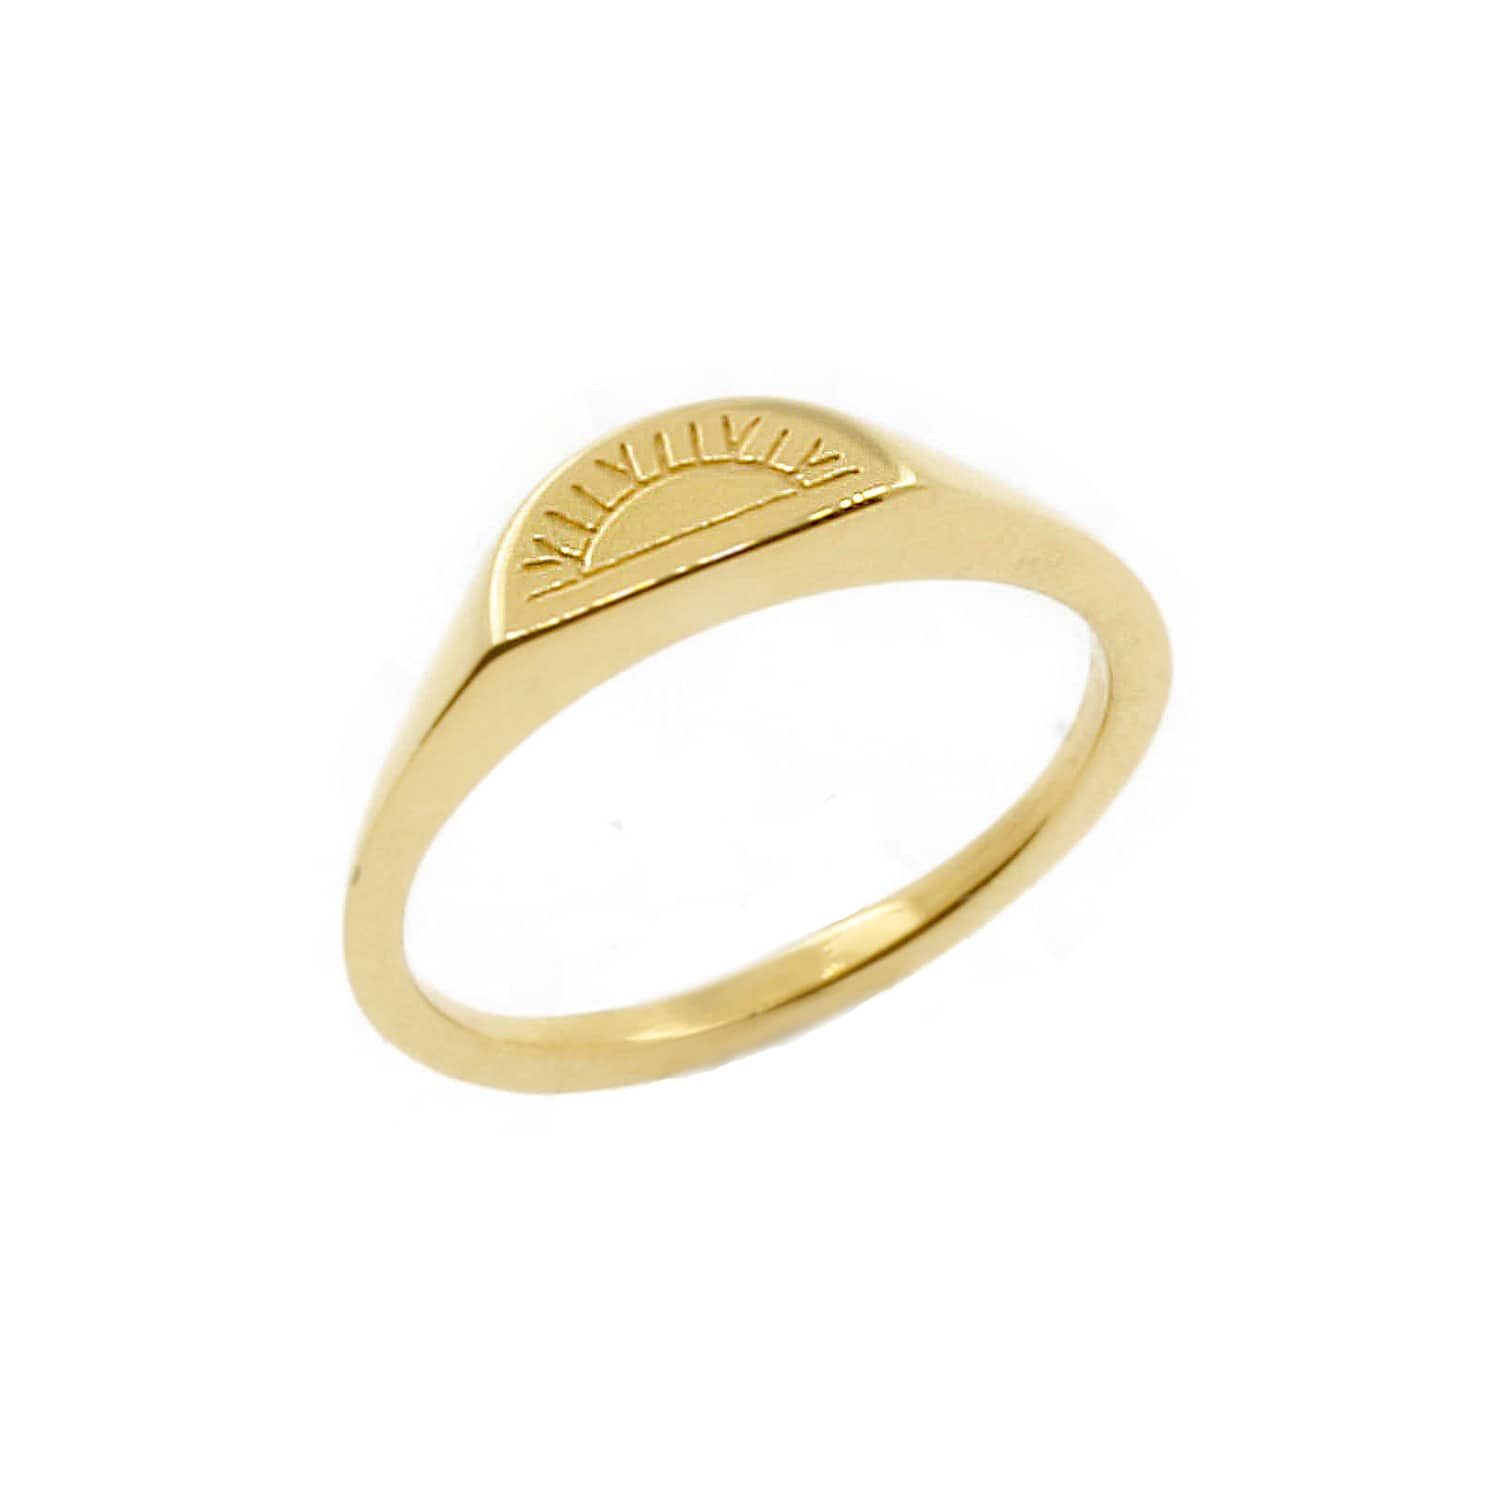 Solid Gold Sun Signet Ring by No 13